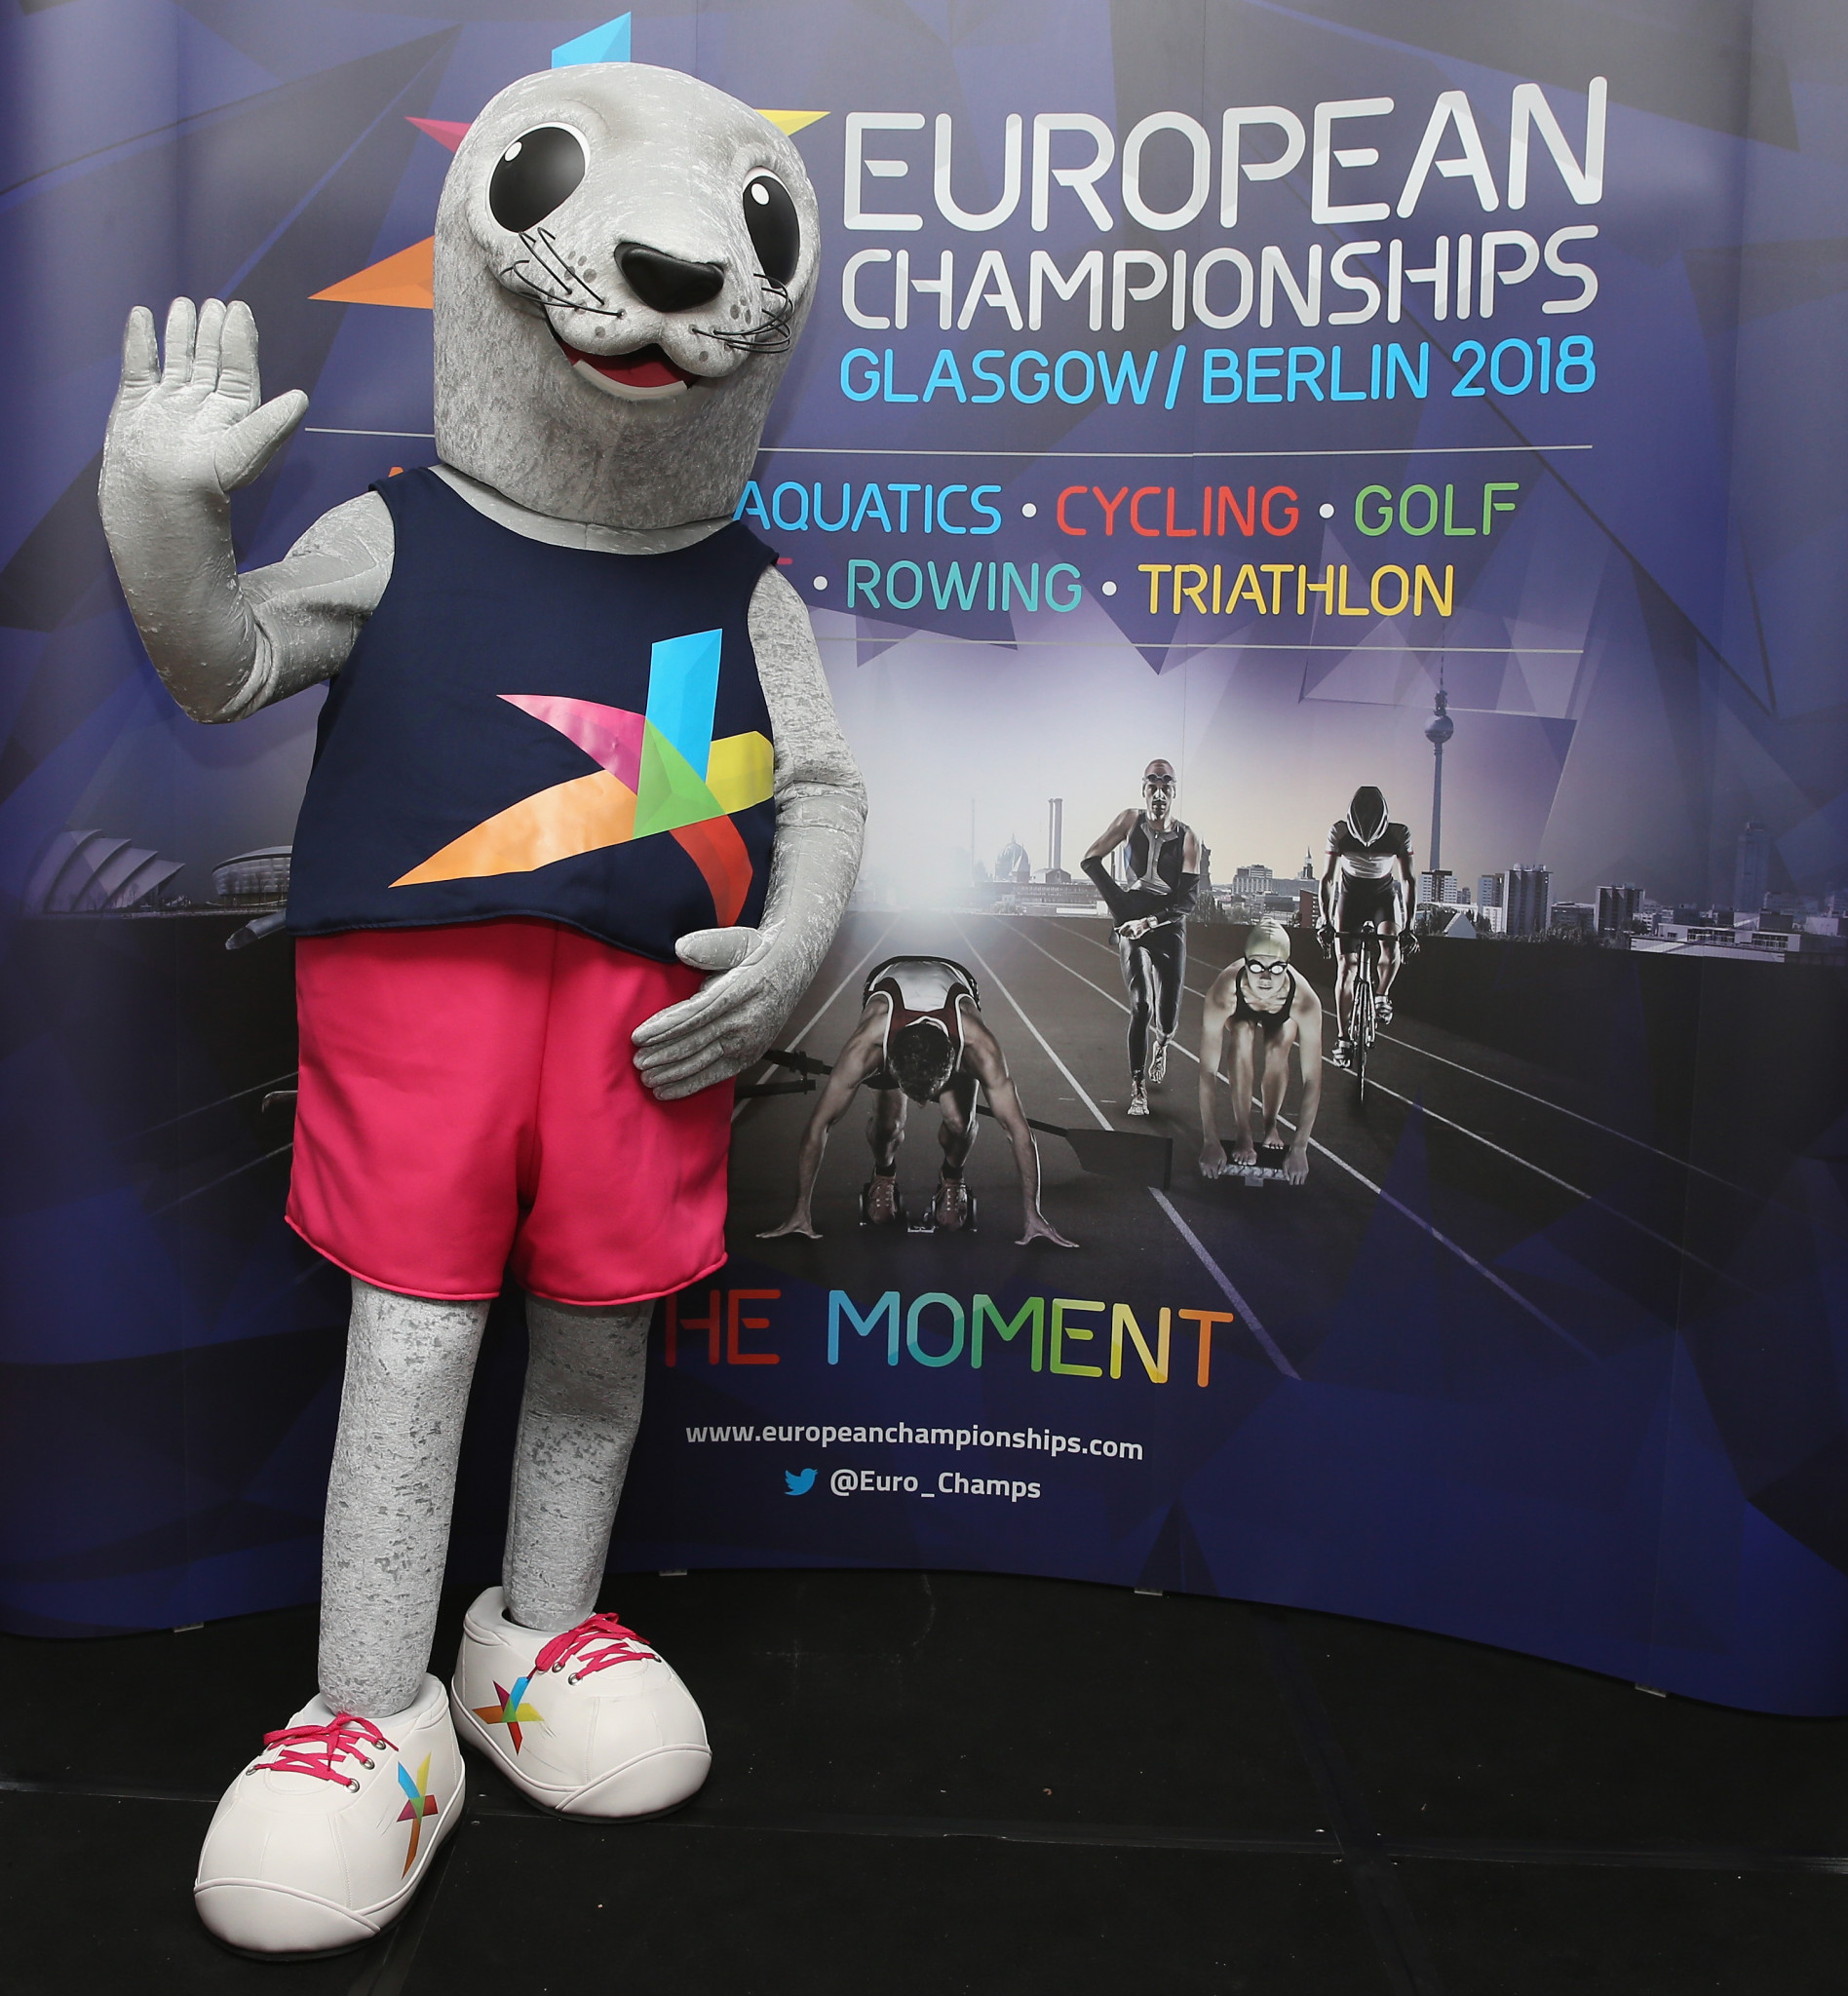 Xerox to provide all printing and scanning services at Glasgow 2018 European Championships